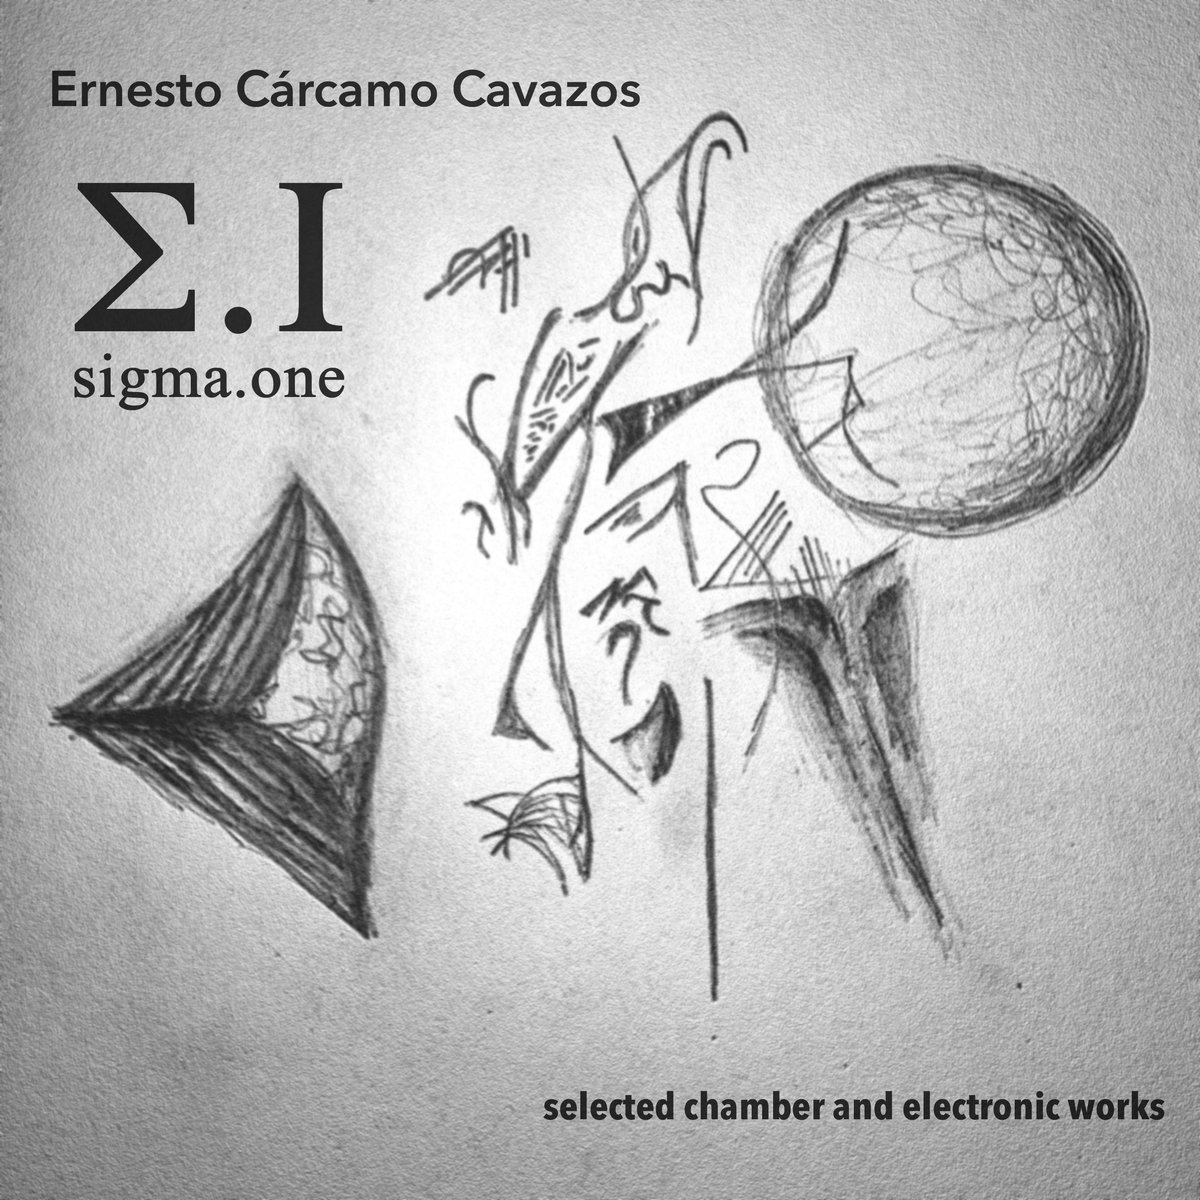 sigma.one (2017) - Selected Chamber and Electronic Works1. Cuarteto de Violines (2011)2. Diez Simpatías (2014)3. Chanfle (2013, 2017)4. Crisis (2015)